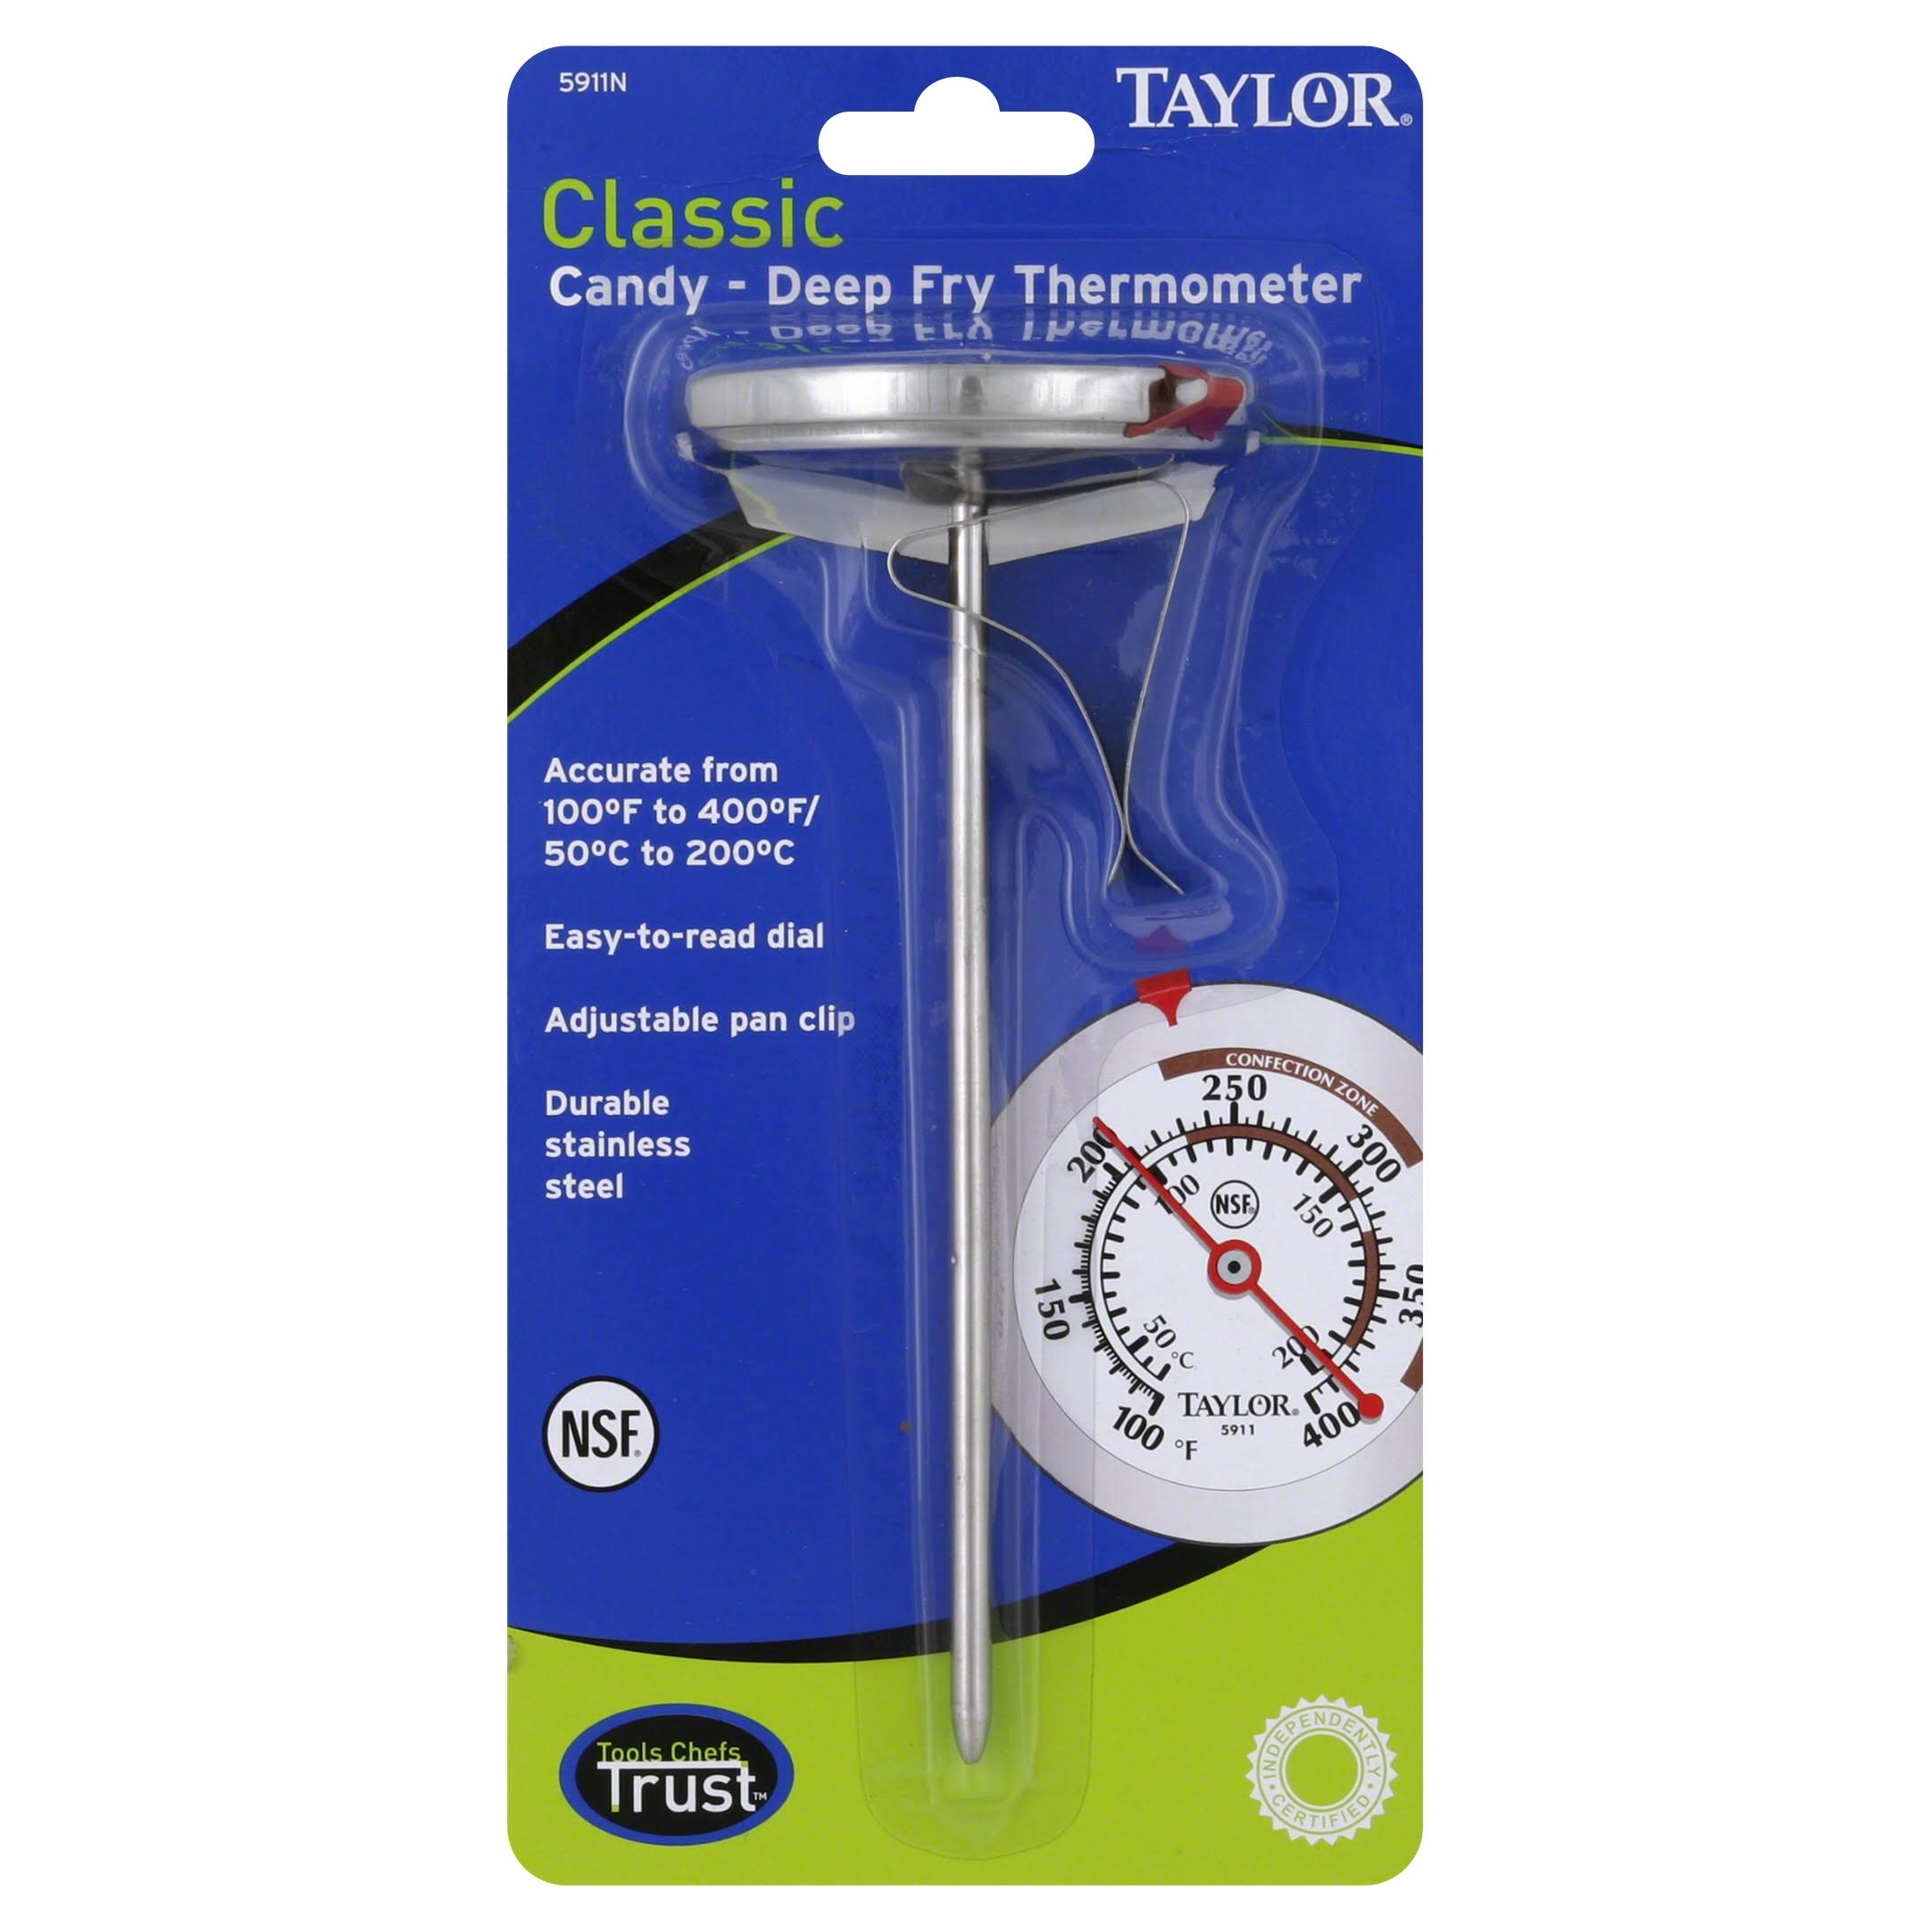 Taylor 5911 N Classic Series Candy and Deep Fry Thermometer